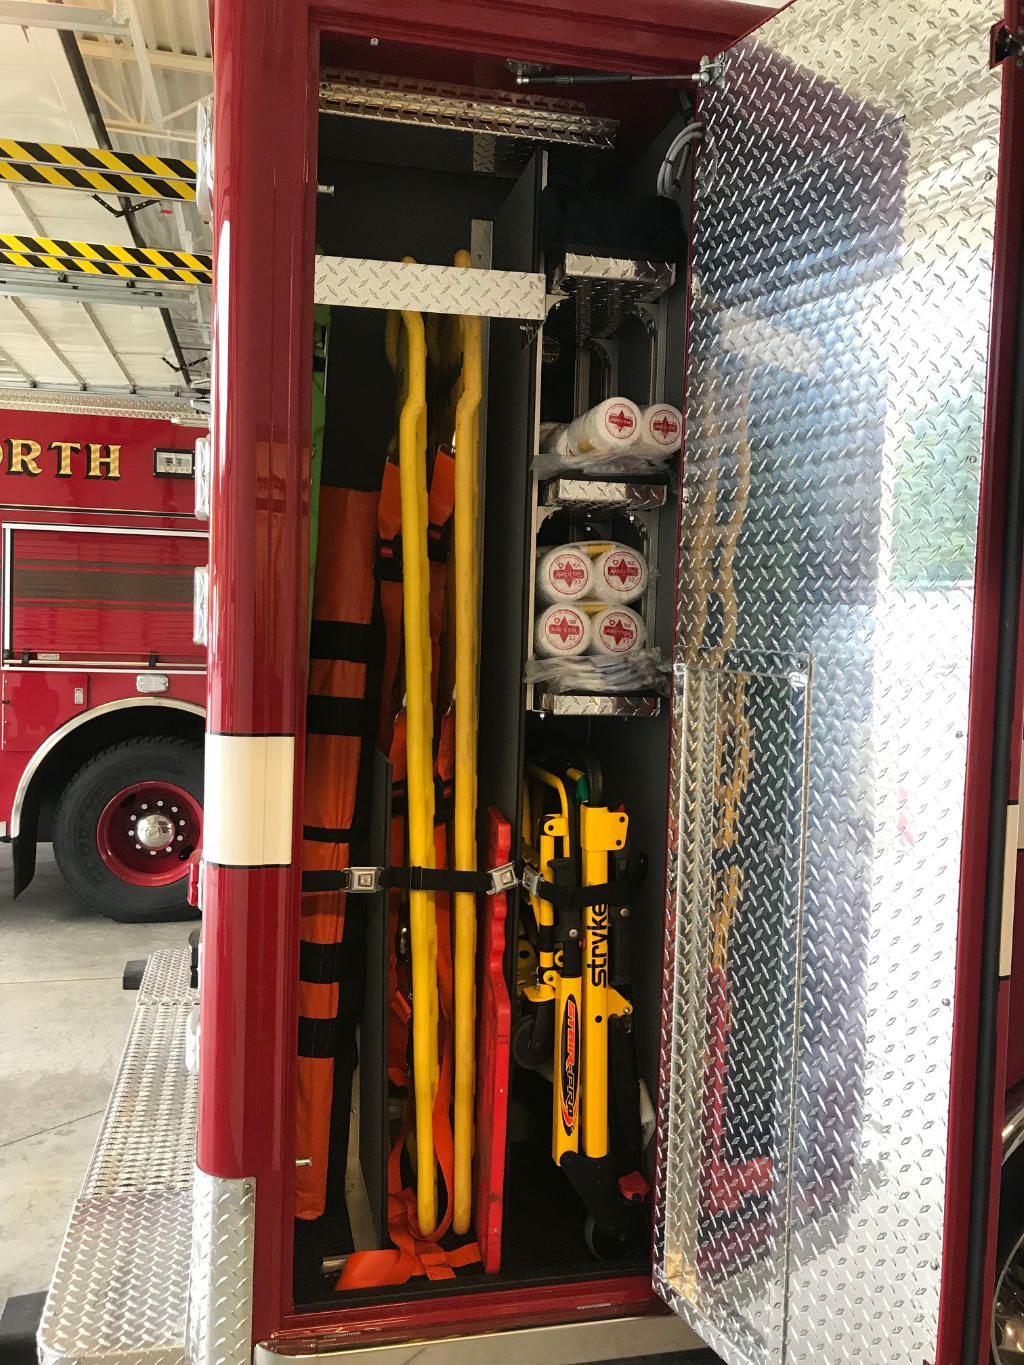 The exterior rear officer's side compartment holds backboards, folding stretchers, a stair chair and other gear.